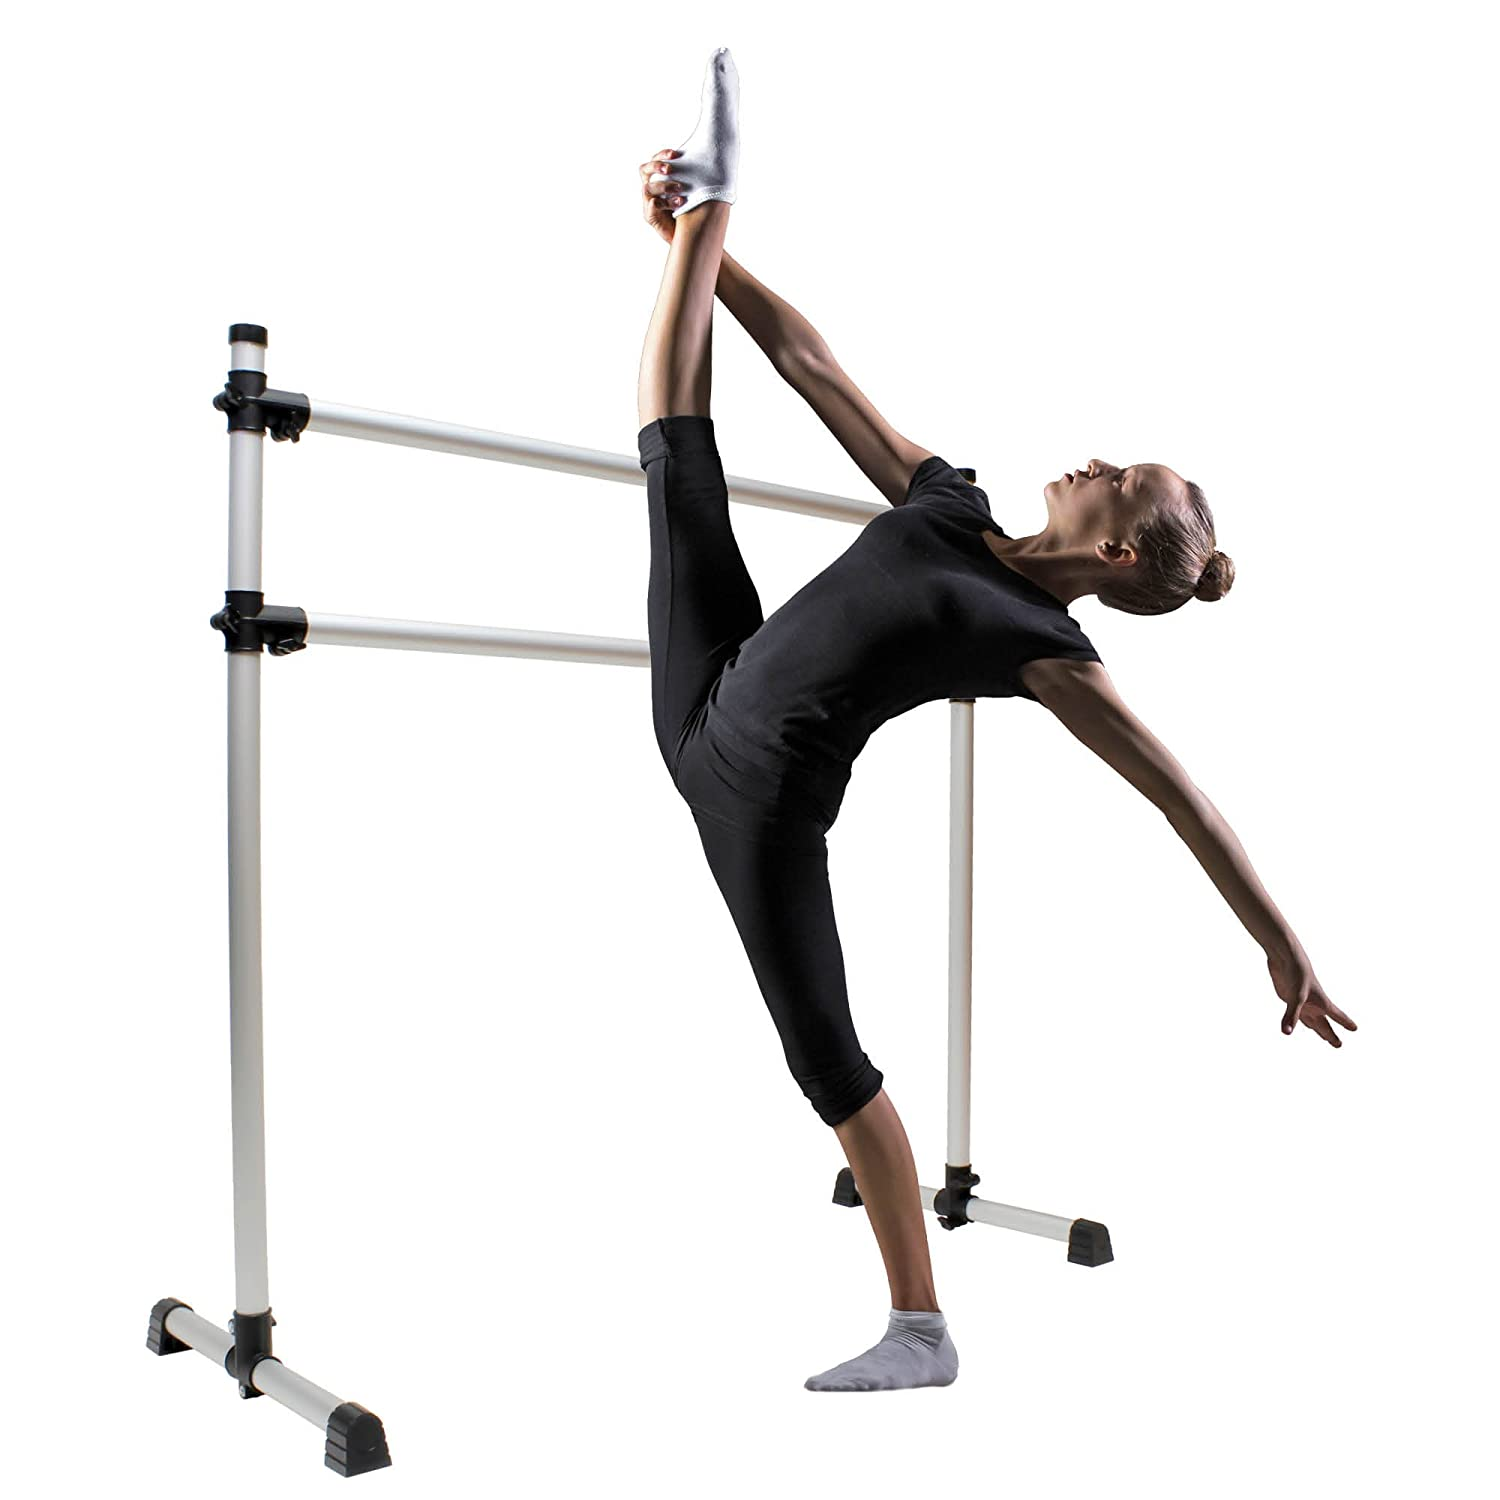 Get Out! Ballet Barre Portable for Home and Studio – Double Ballet Barre Freestanding Stretching Bar, Dance Equipment